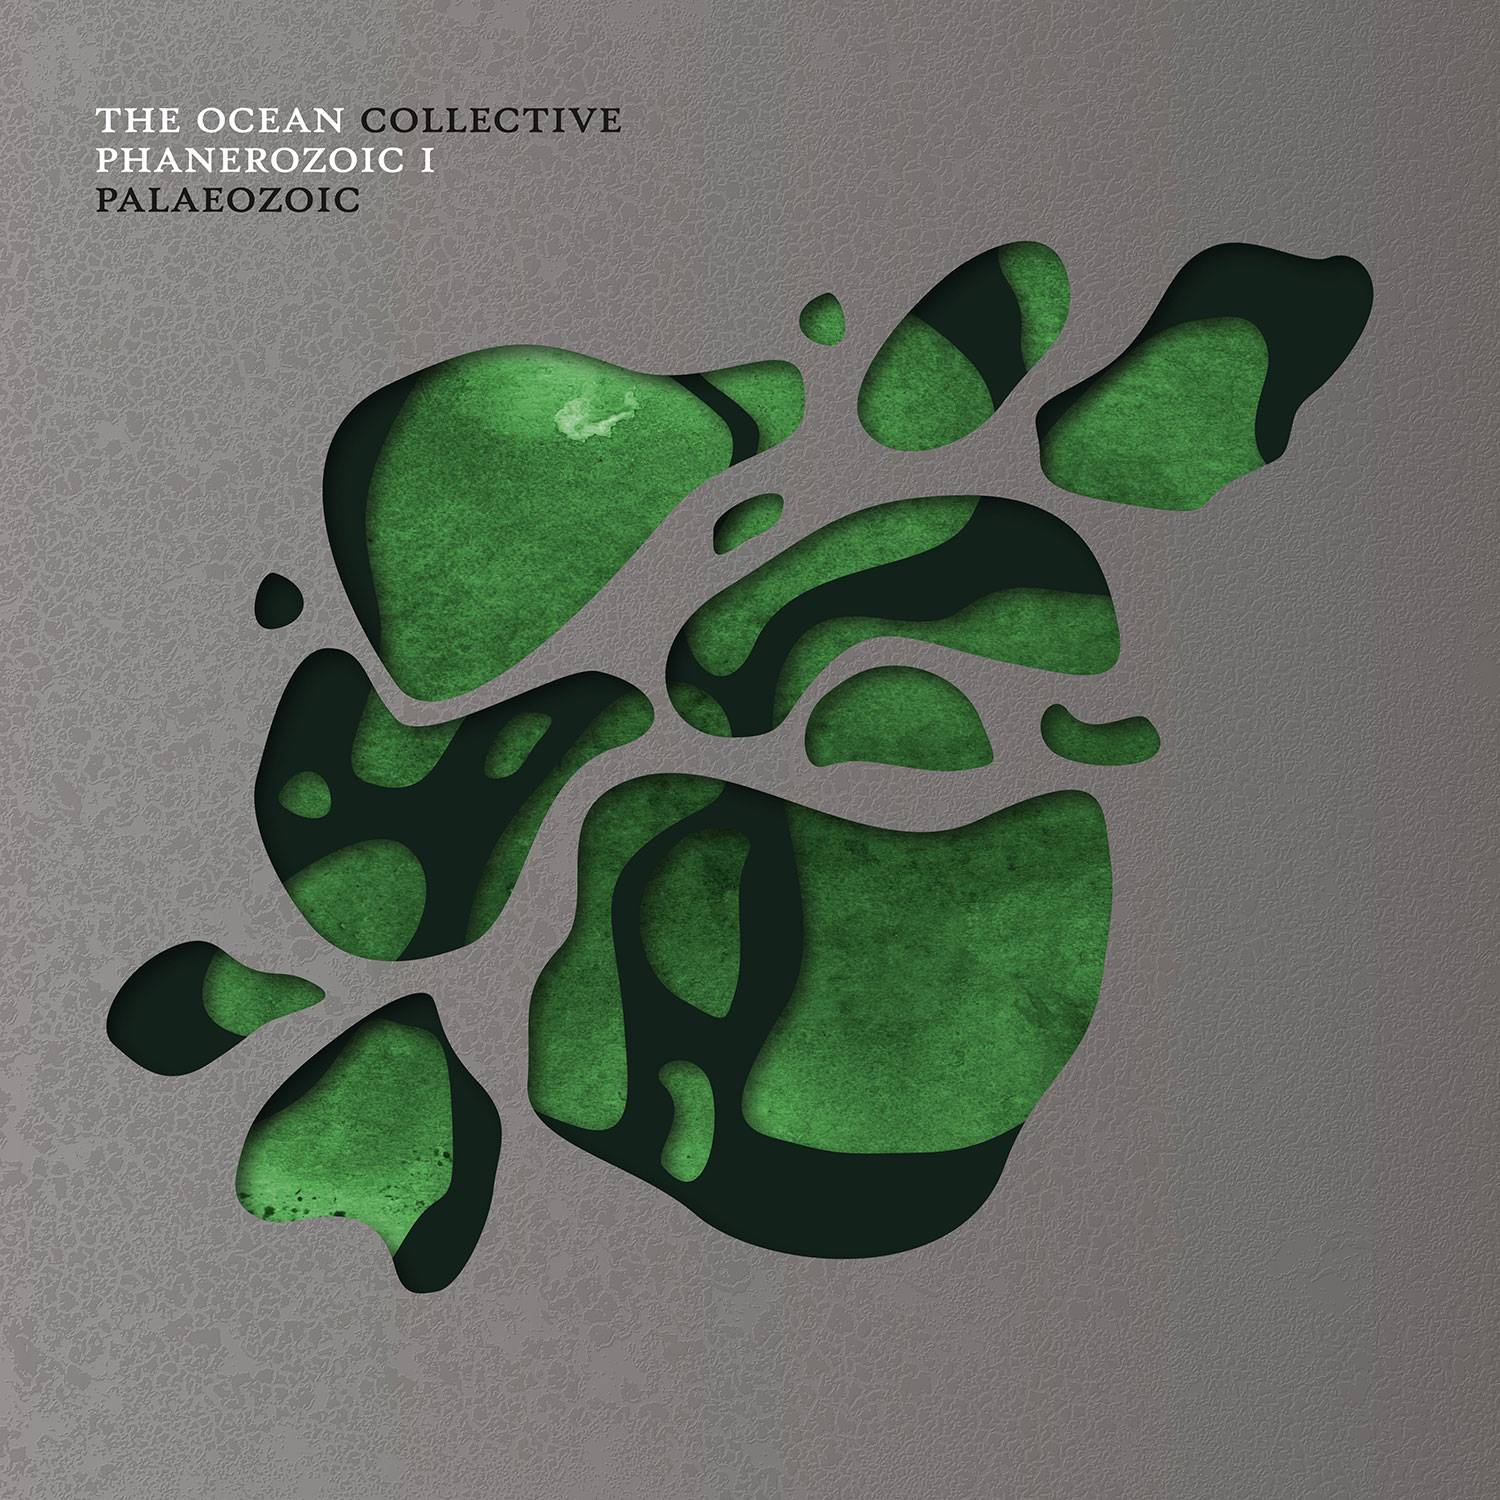 THE OCEAN // PHANEROZOIC I - LTD DELUXE EDITION CD (IMPORT) - Wild Thing Records